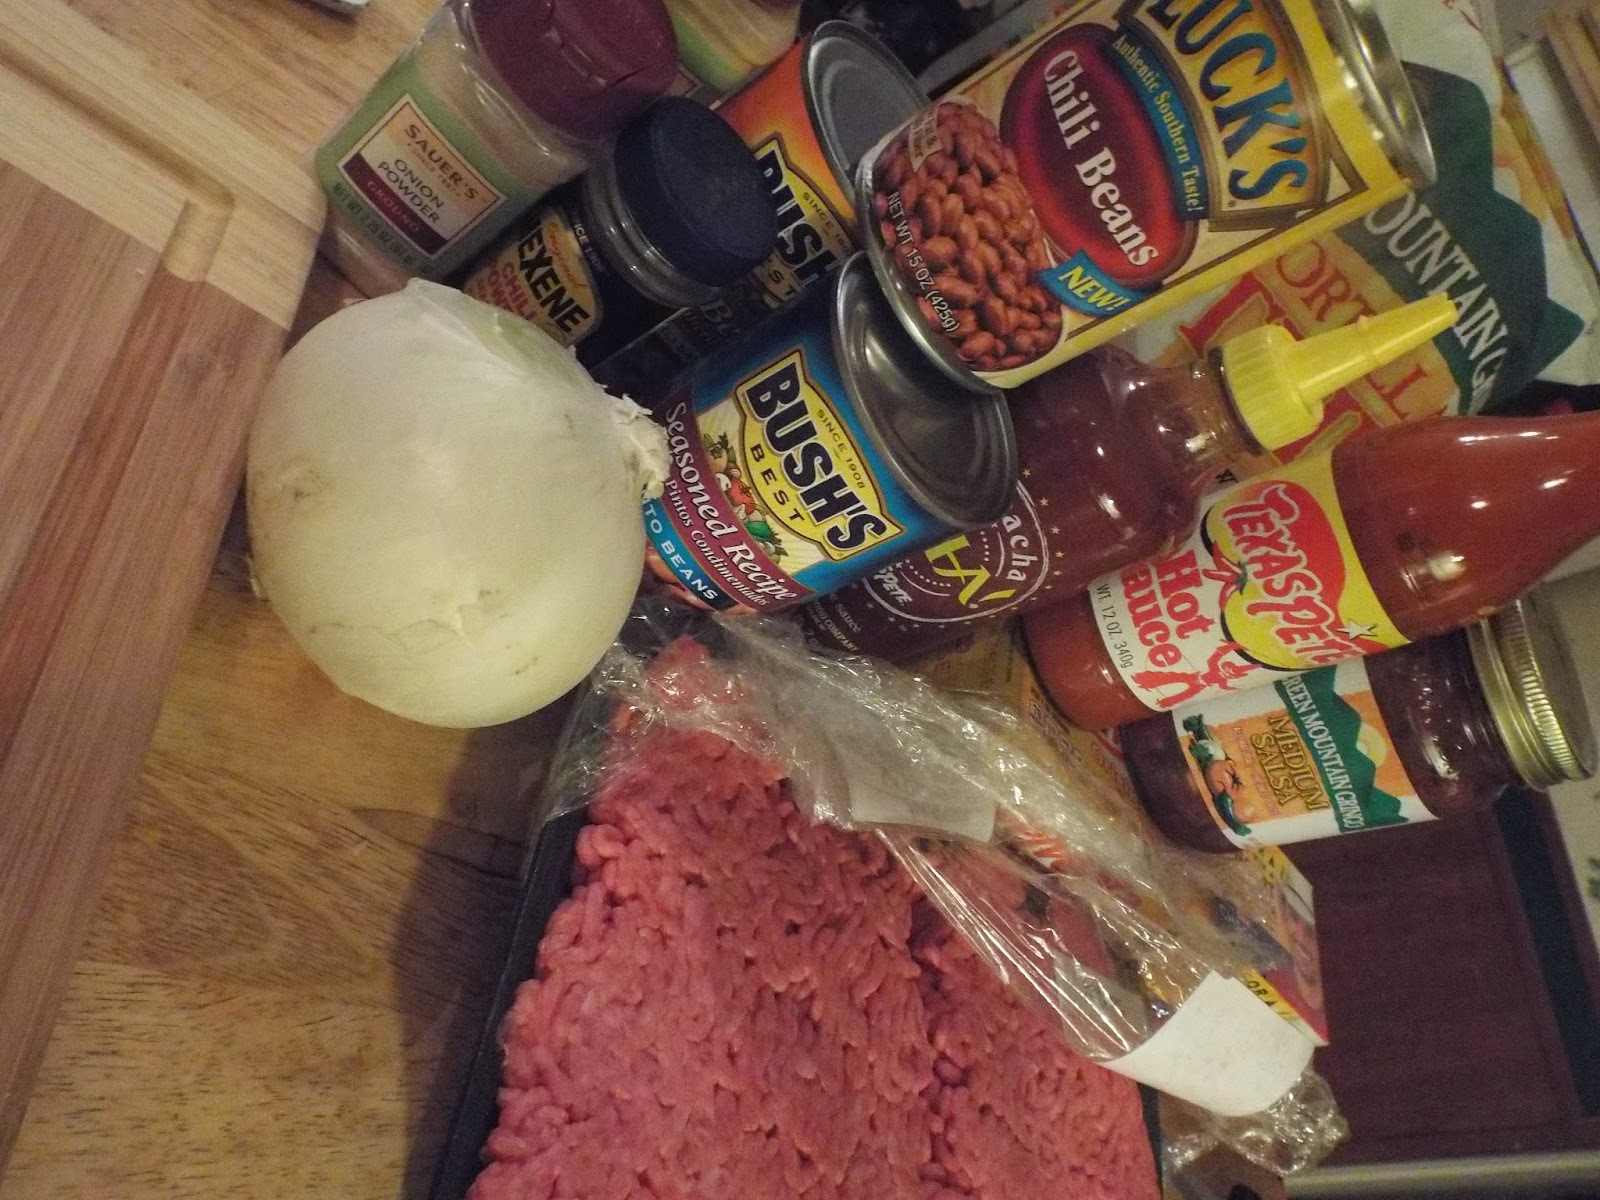 Ingredients for Texas Pete CHA! Chili